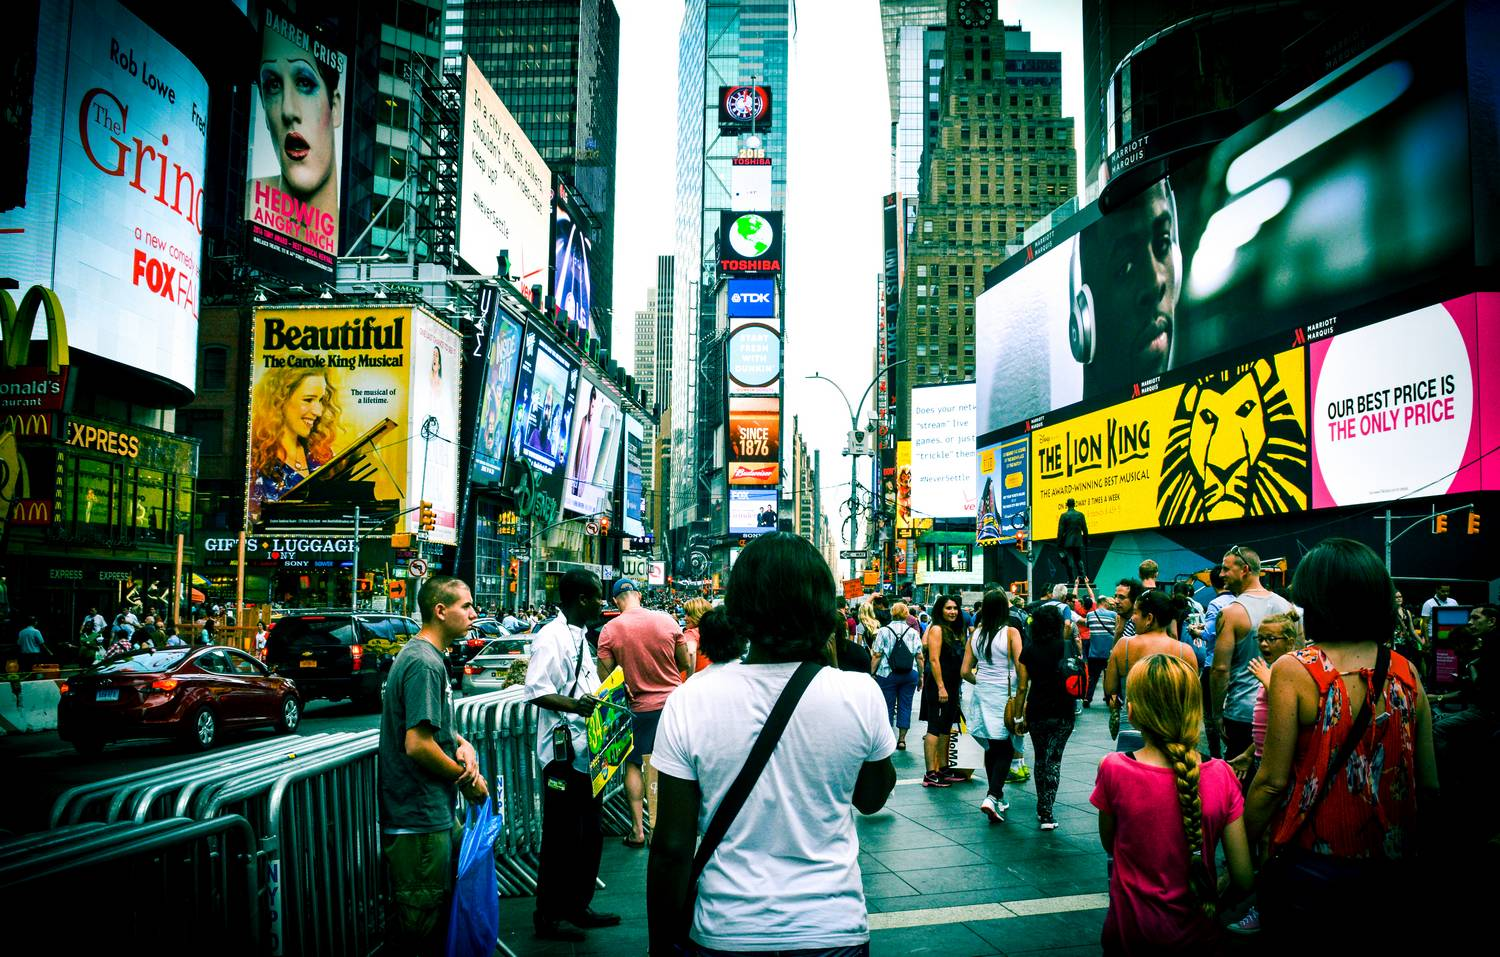 Nath in Times Square - New York, United States